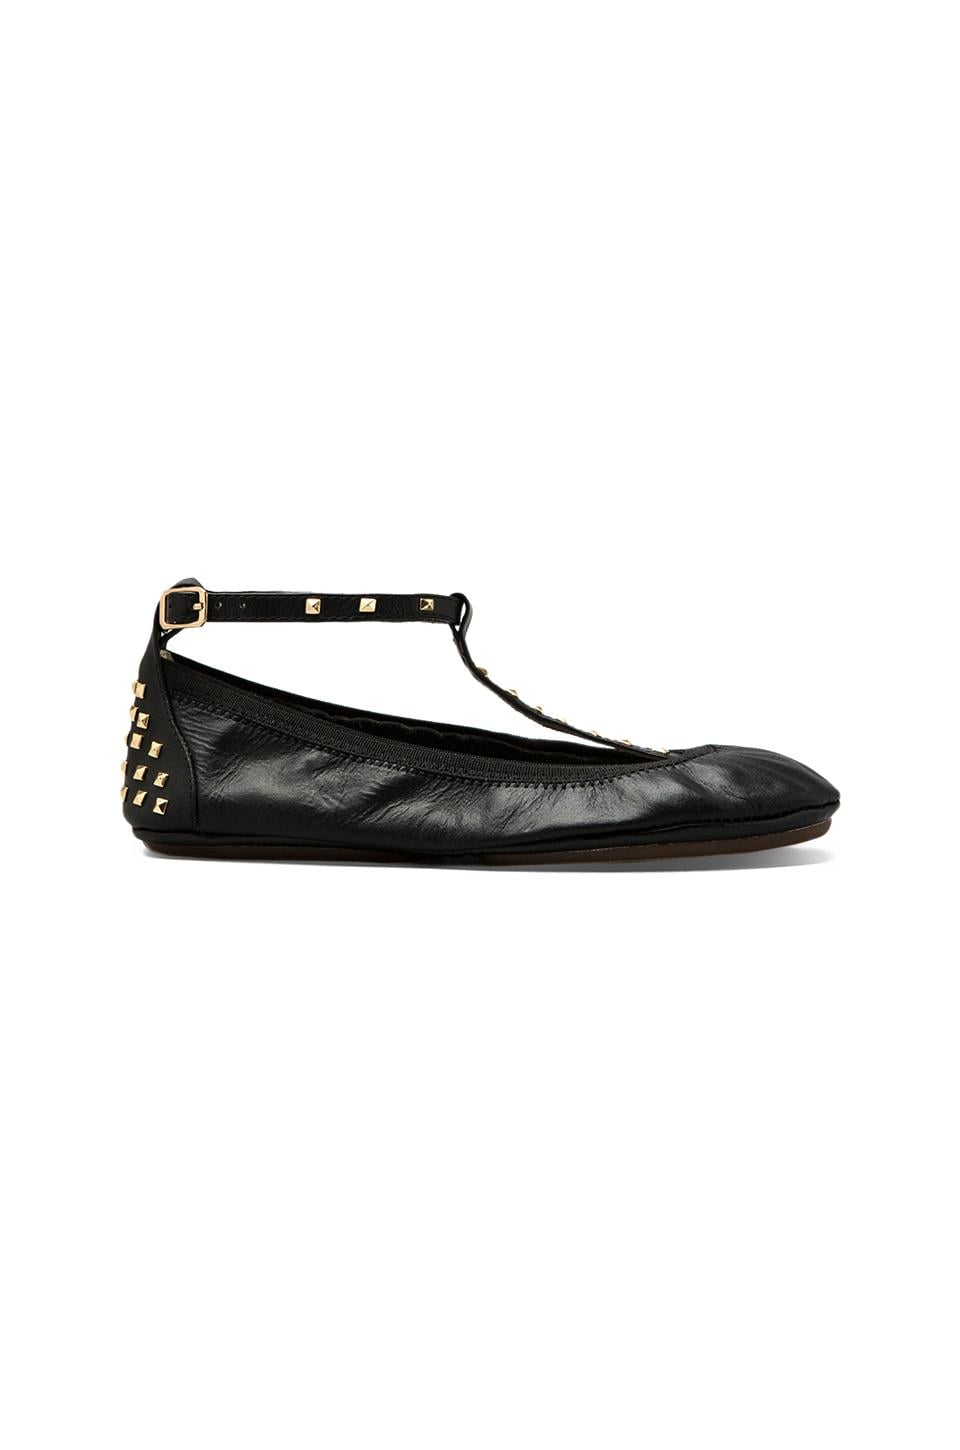 Yosi Samra Gold Studded T Strap Leather Ballet Flat in Black